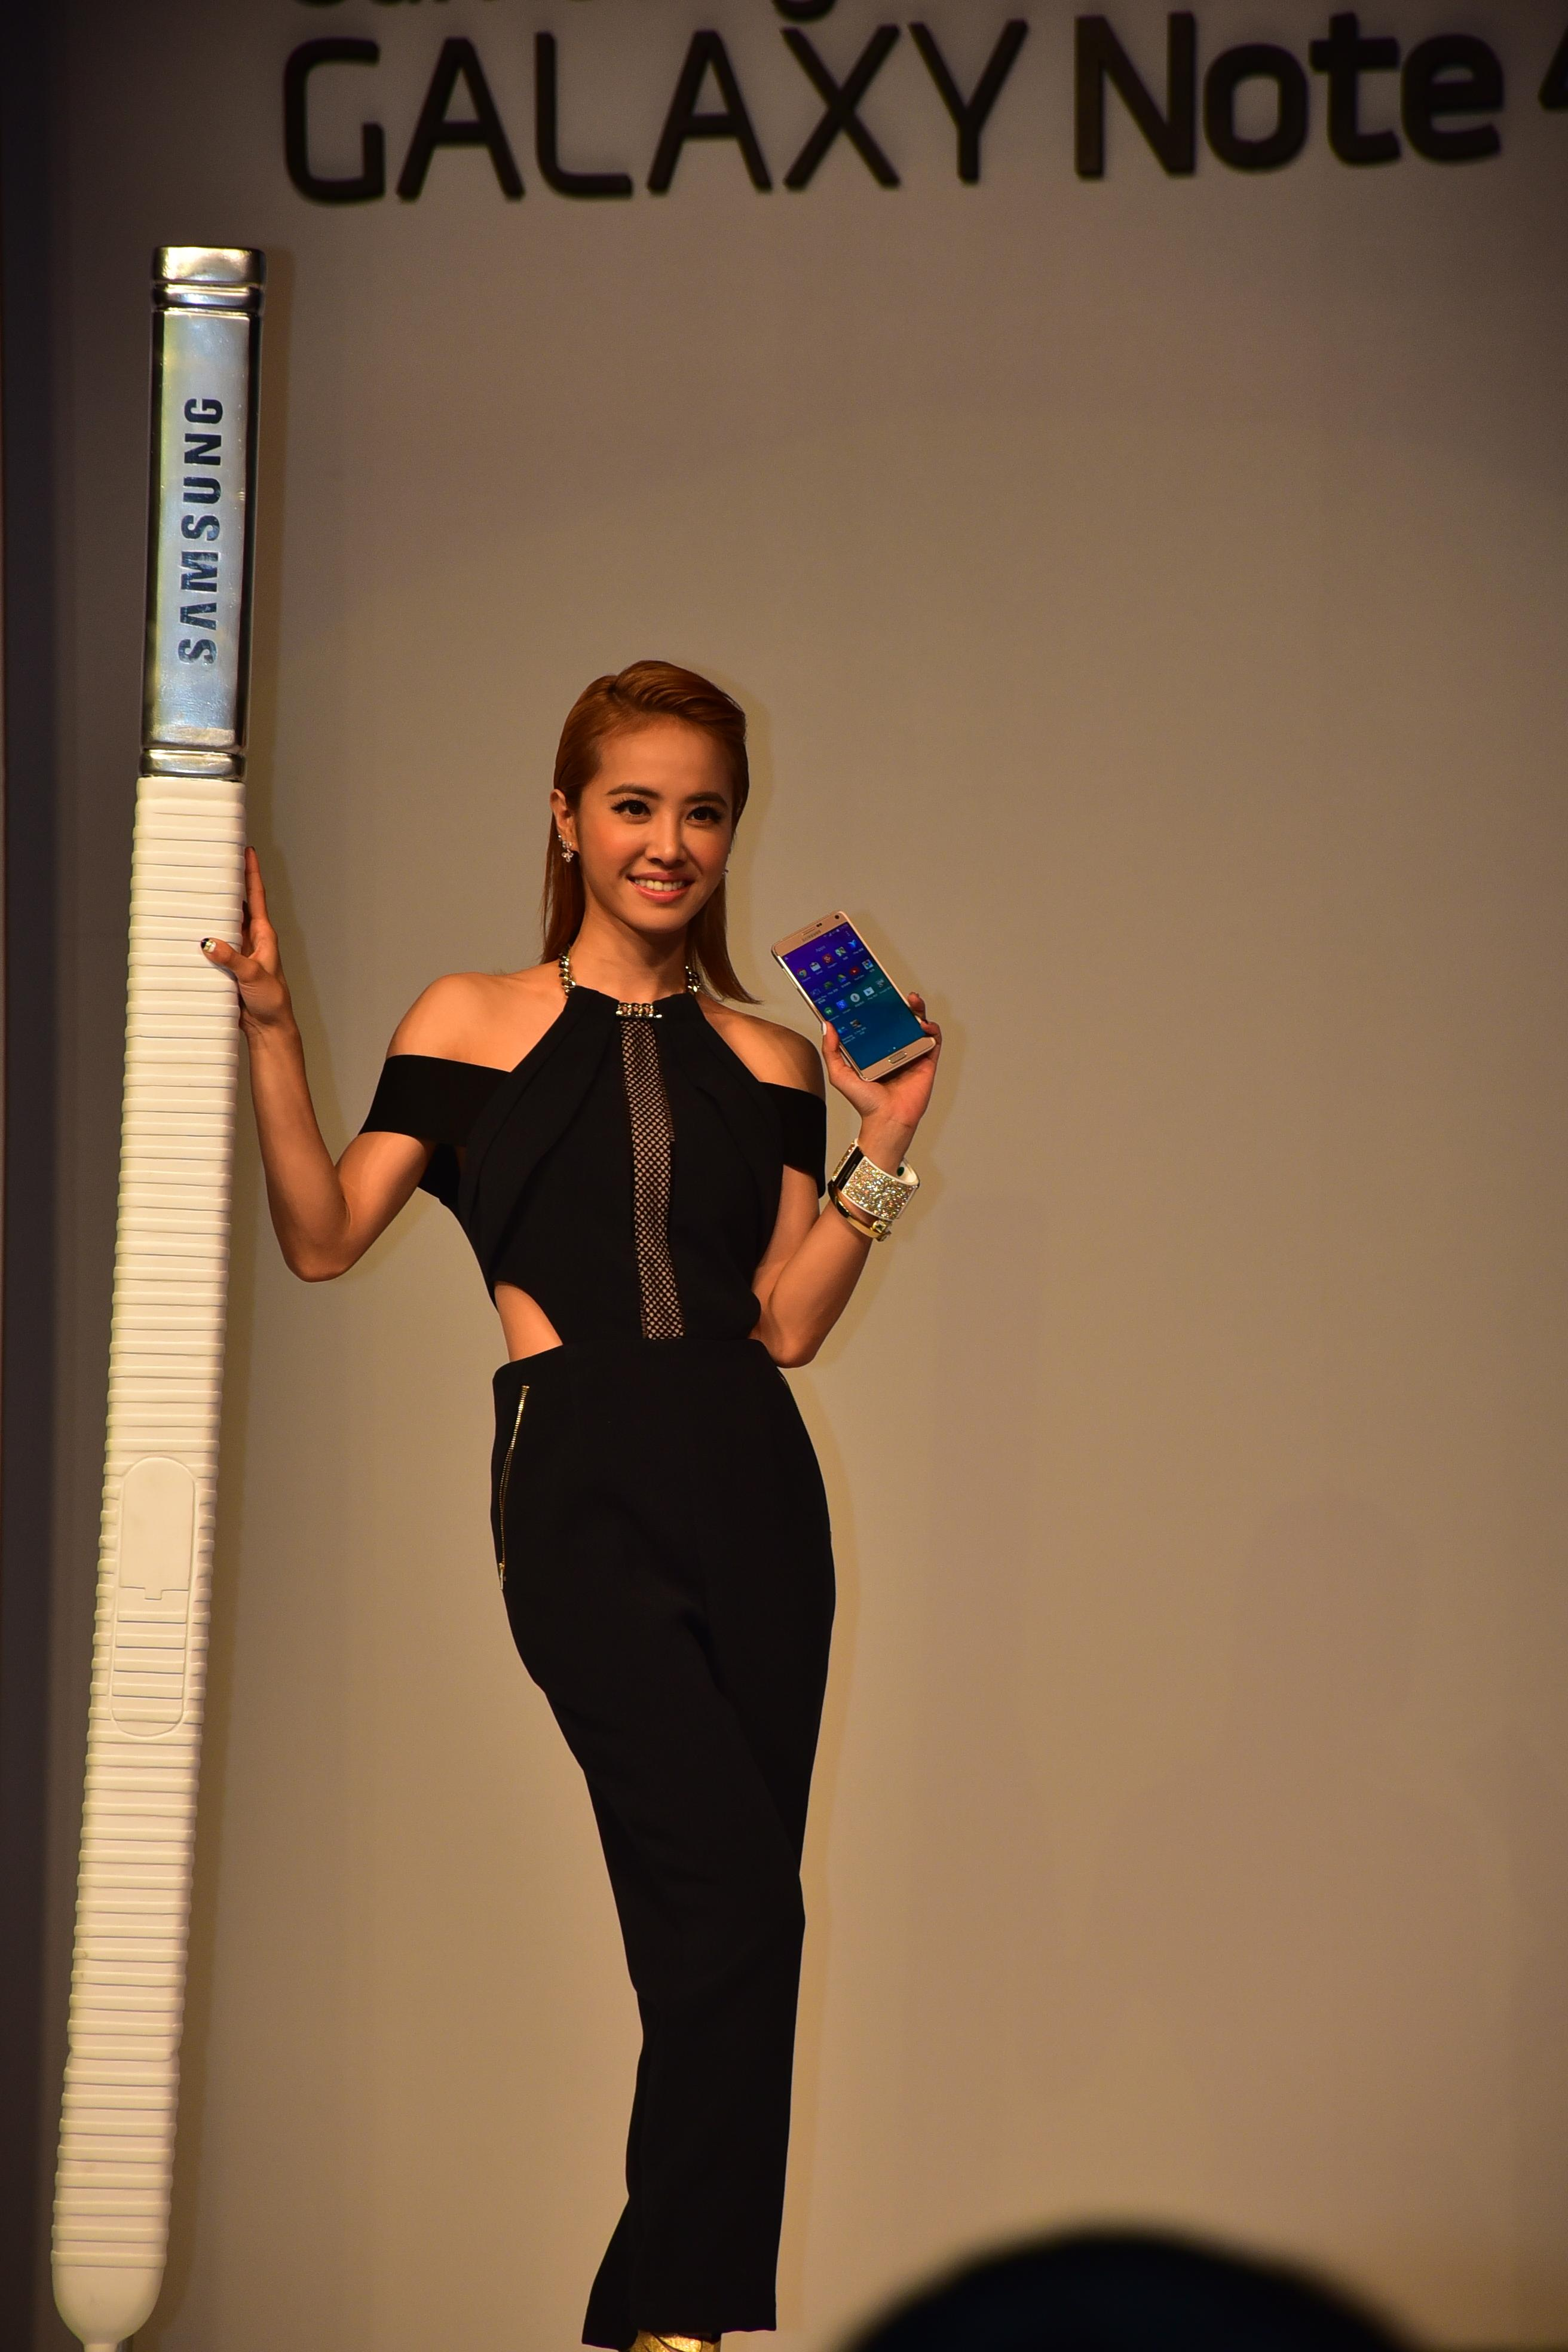 SAMSUNG GALAXY Note 4 with 歌后 蔡依林 !! - XFastest - DSC_2423.JPG